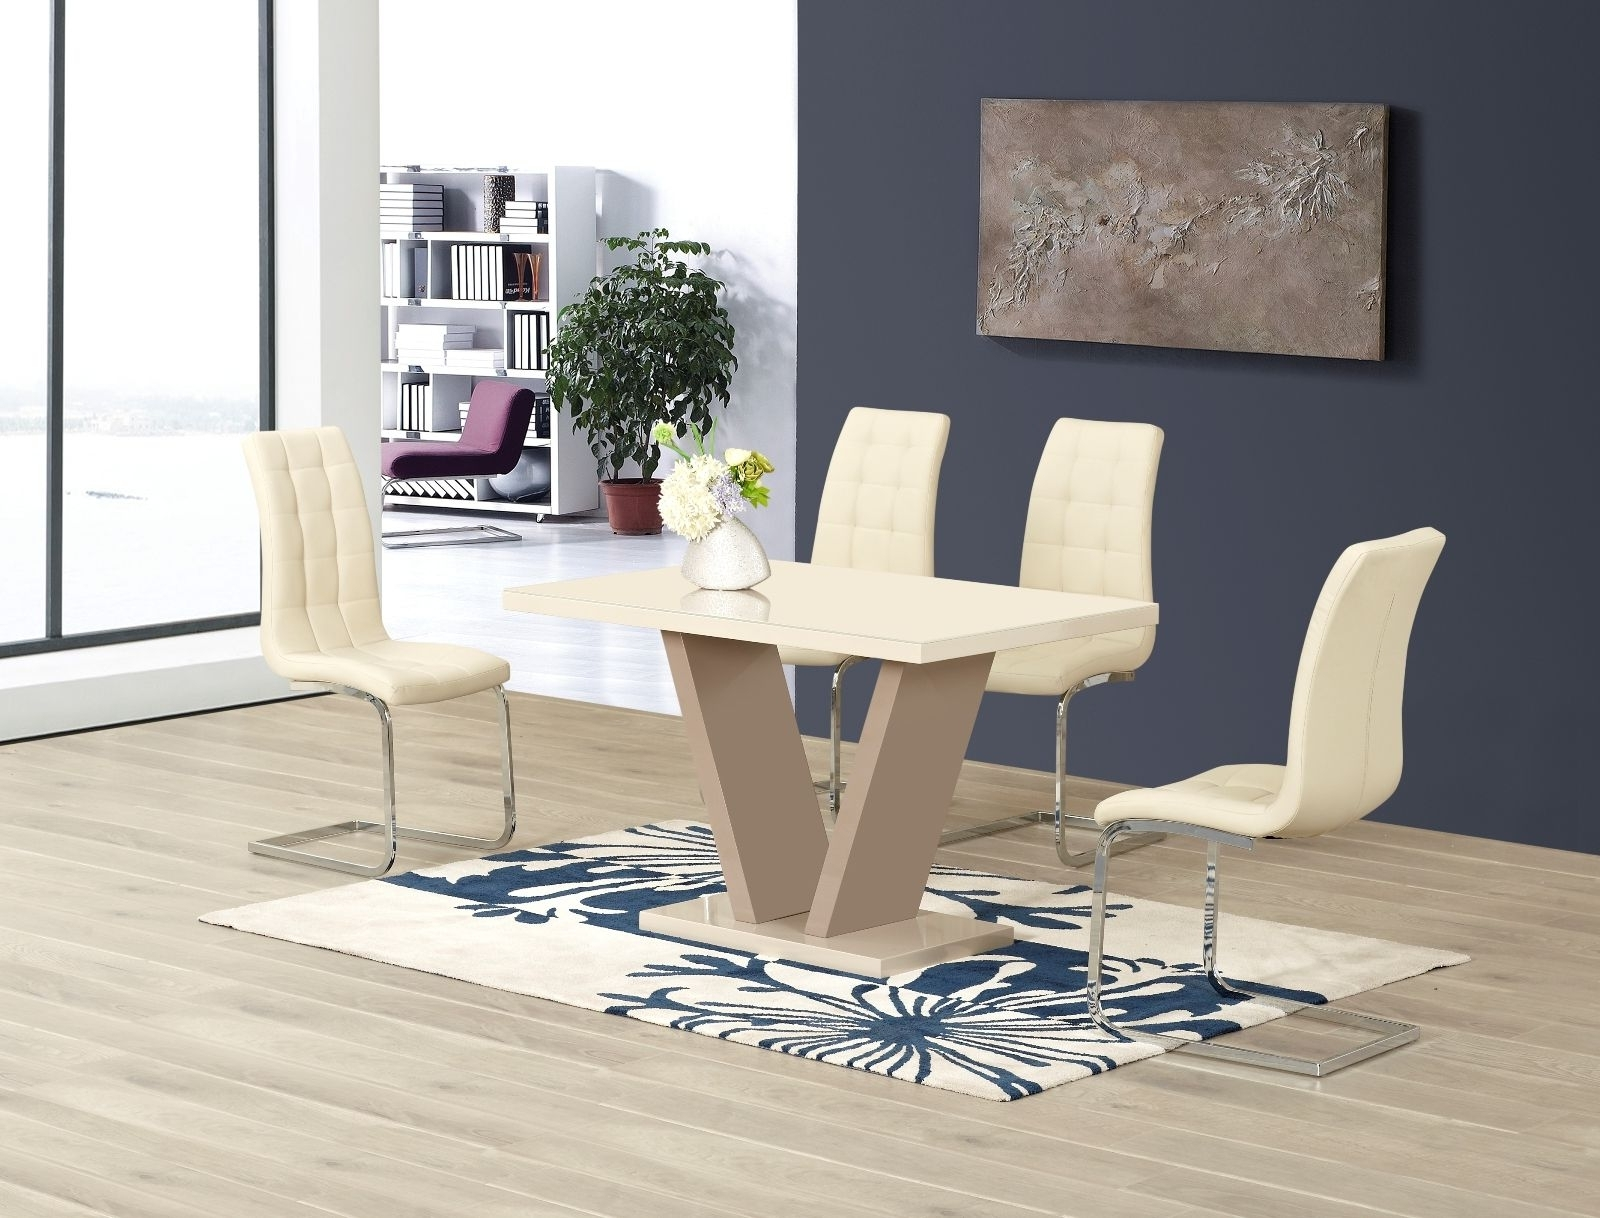 2018 Round Black Glass Dining Tables And 4 Chairs Within Ga Vico Cream Gloss Designer 120 Cm Dining Set & 4 Araceli Or Sicily (Gallery 21 of 25)